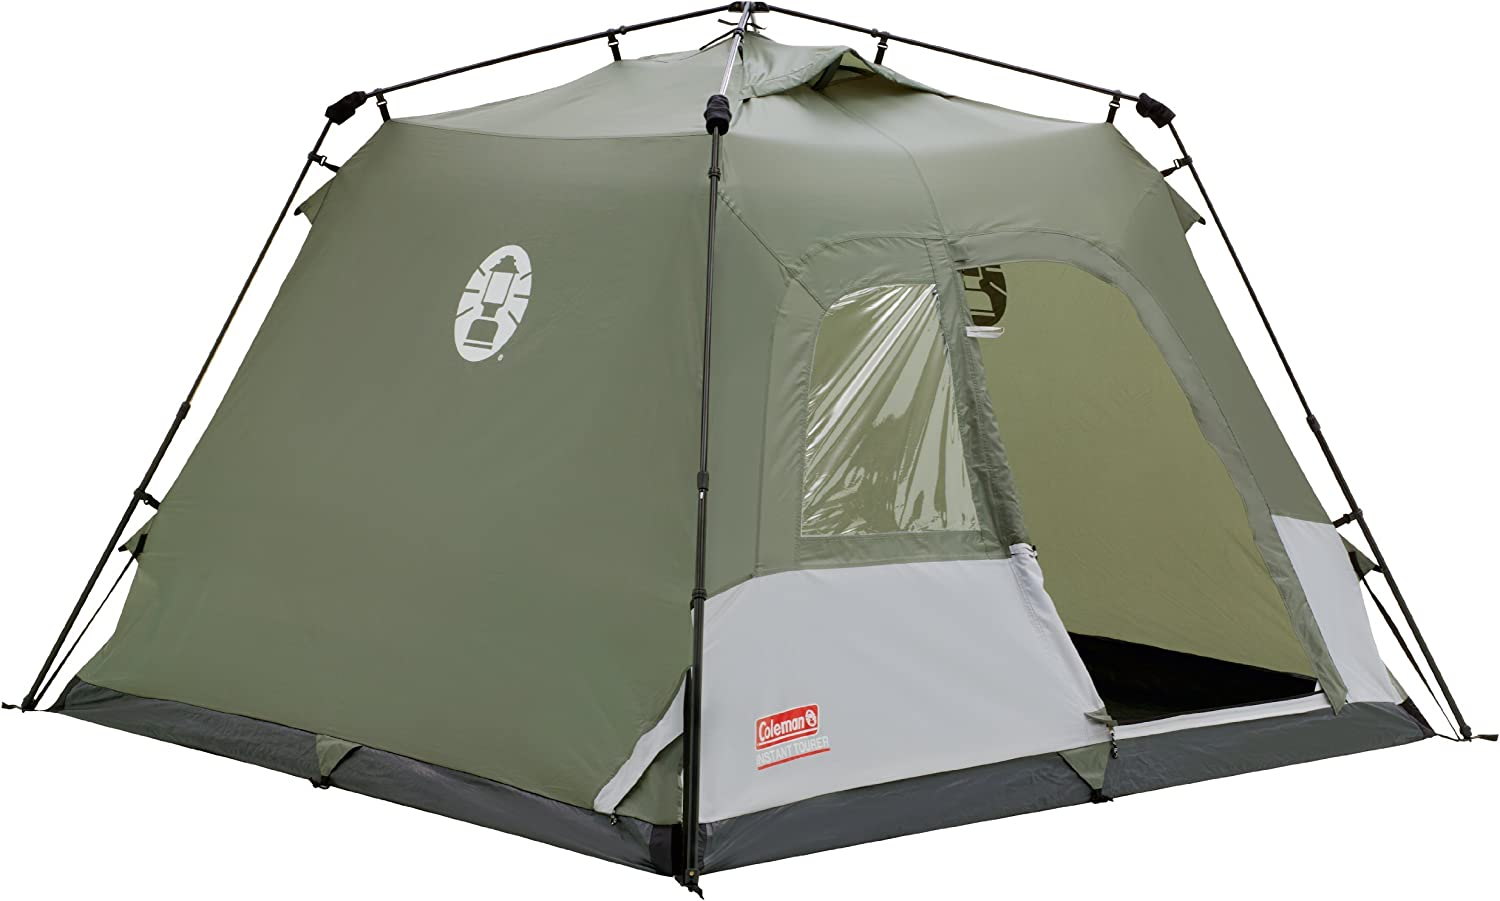 Sports & Outdoors | Instant tent, Tent